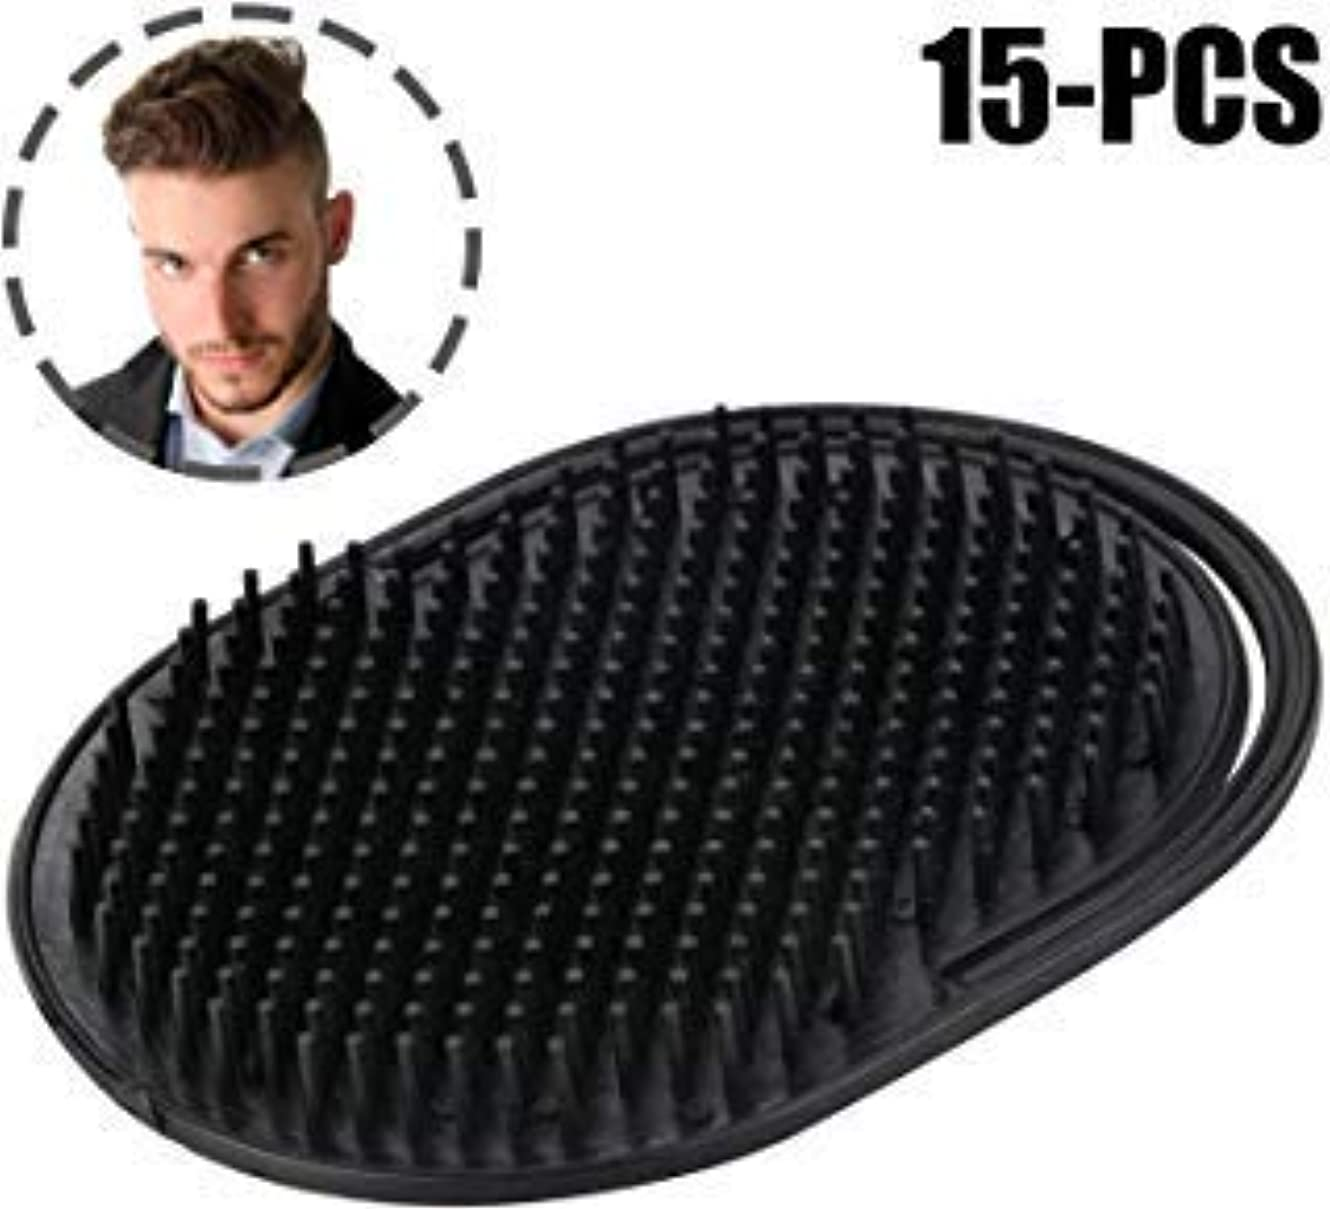 輝度パプアニューギニア適合Kapmore 15 PCS Palm Comb Pocket Comb Creative Scalp Massage Brush Portable Shampoo Comb for Men [並行輸入品]